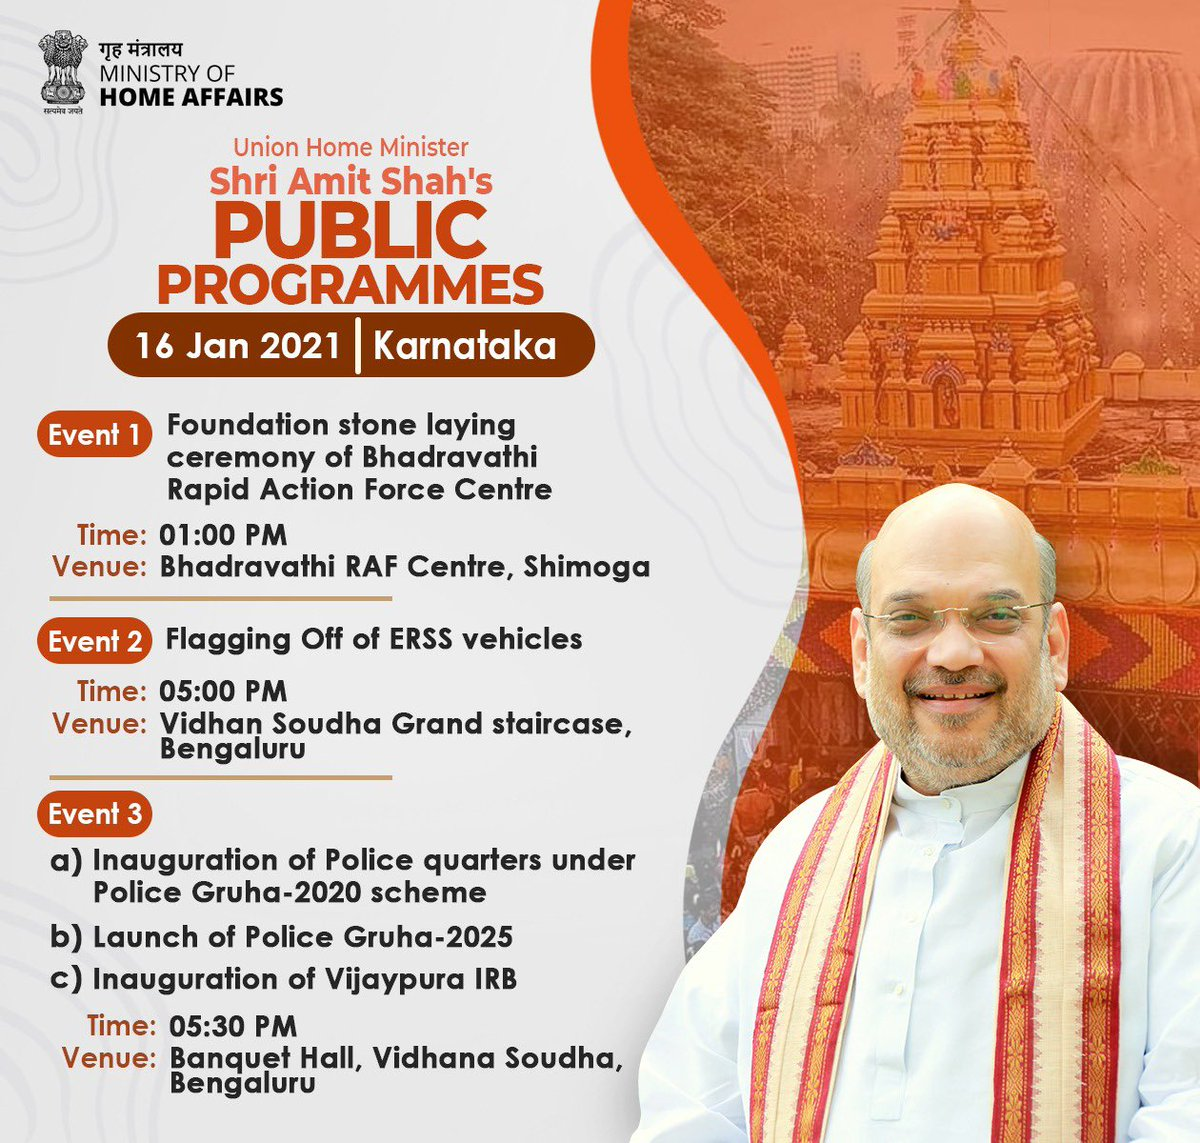 Replying to @HMOIndia: Schedule of public programs of Union Home Minister Shri @AmitShah in Karnataka tomorrow 16th Jan 2021.